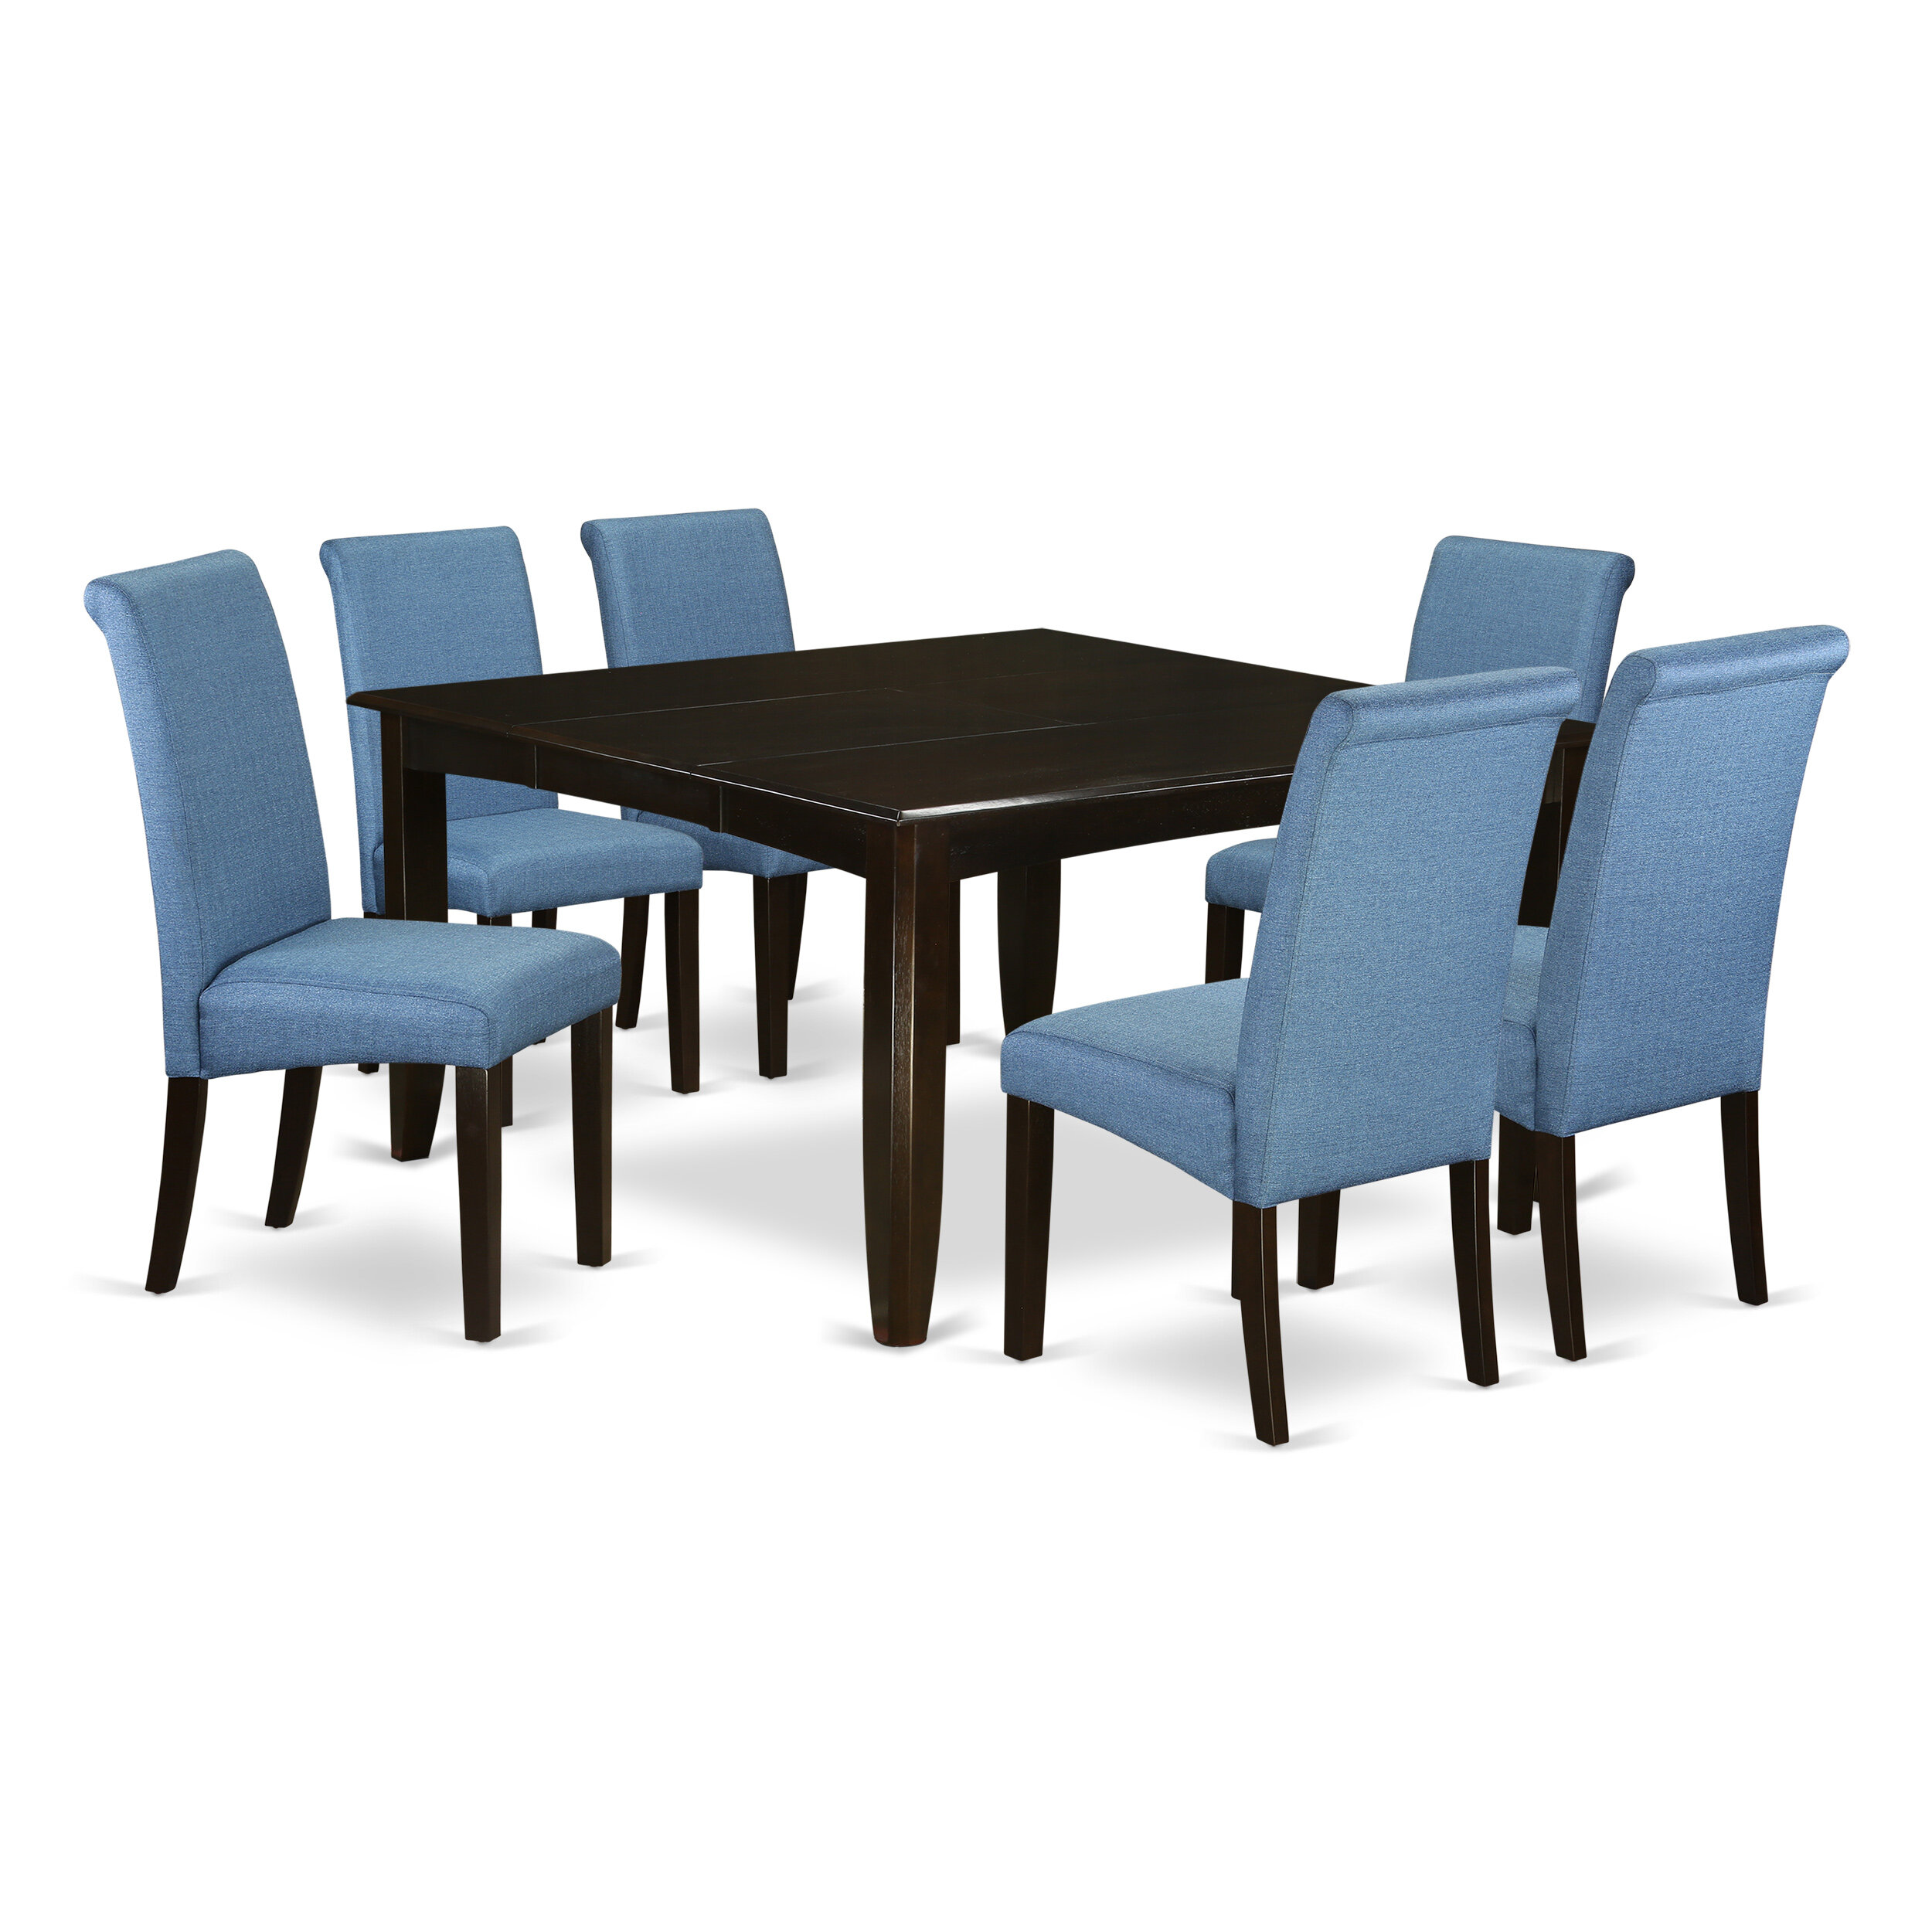 Marlene Square Kitchen Table 7 Piece Extendable Solid Wood Dining Set